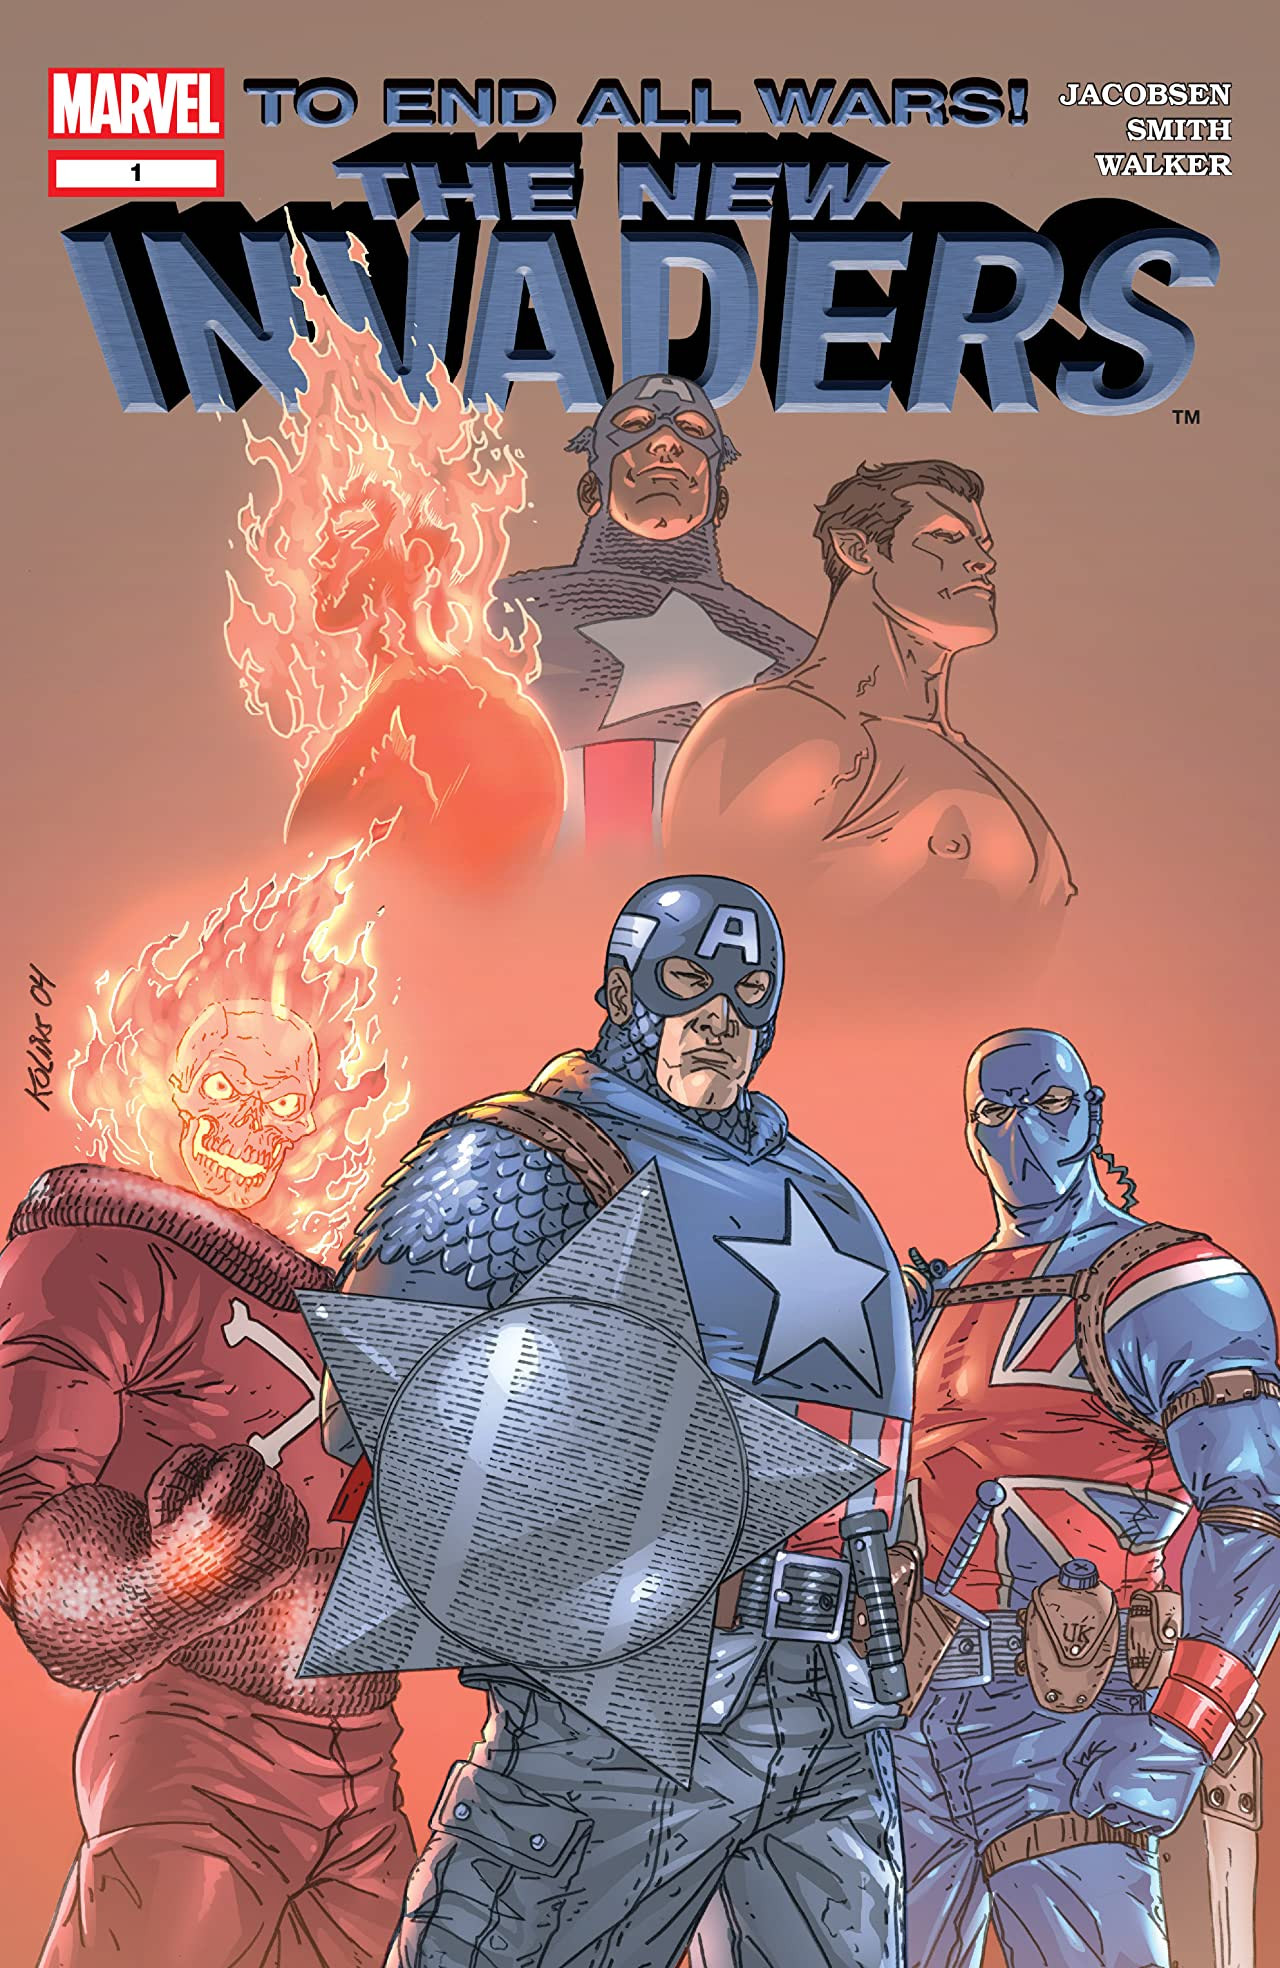 Marvel's Invaders by xcub on DeviantArt